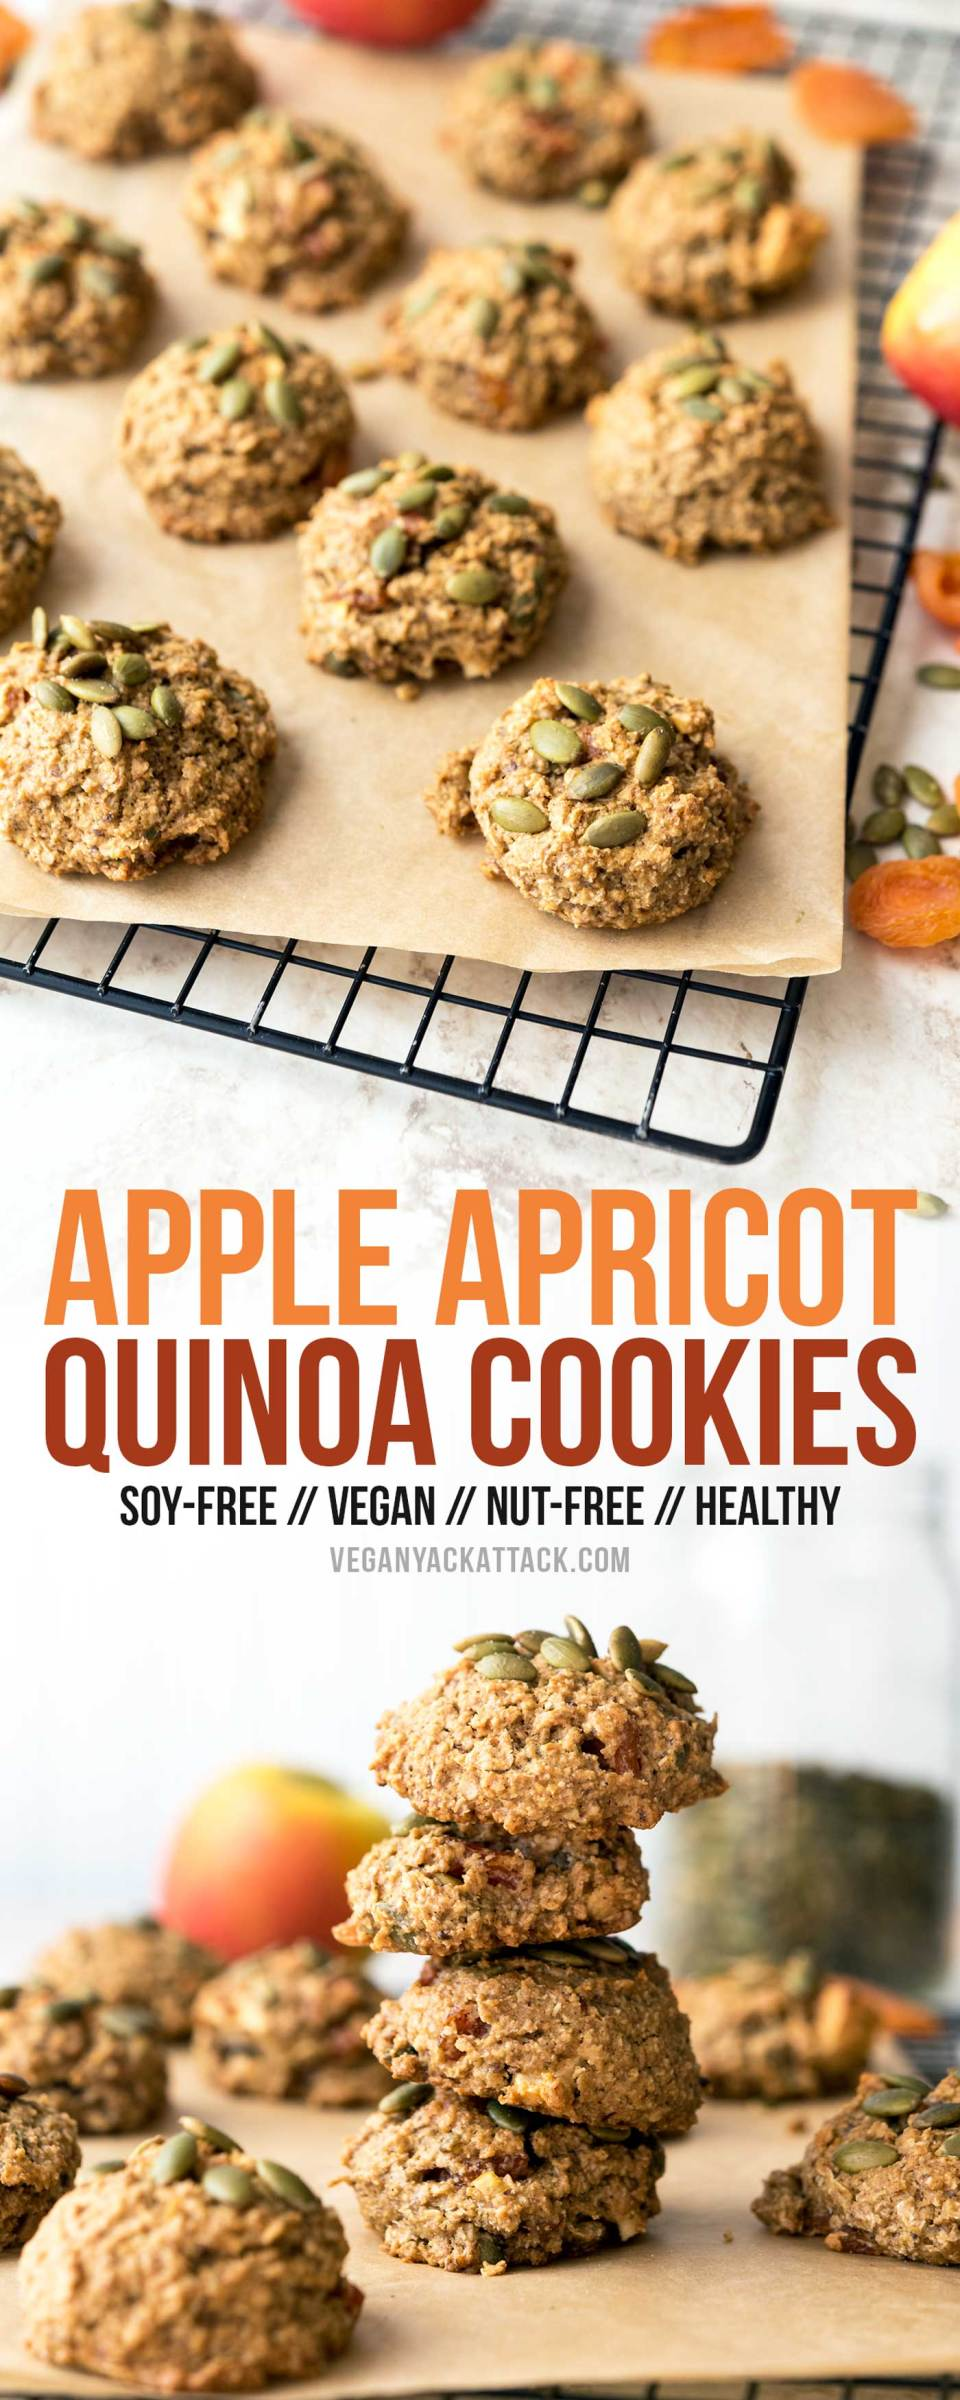 These Apple Apricot Quinoa Cookies are filled with fruity goodness and make great snacks! Made with whole grains and quinoa flakes, to keep you satiated.